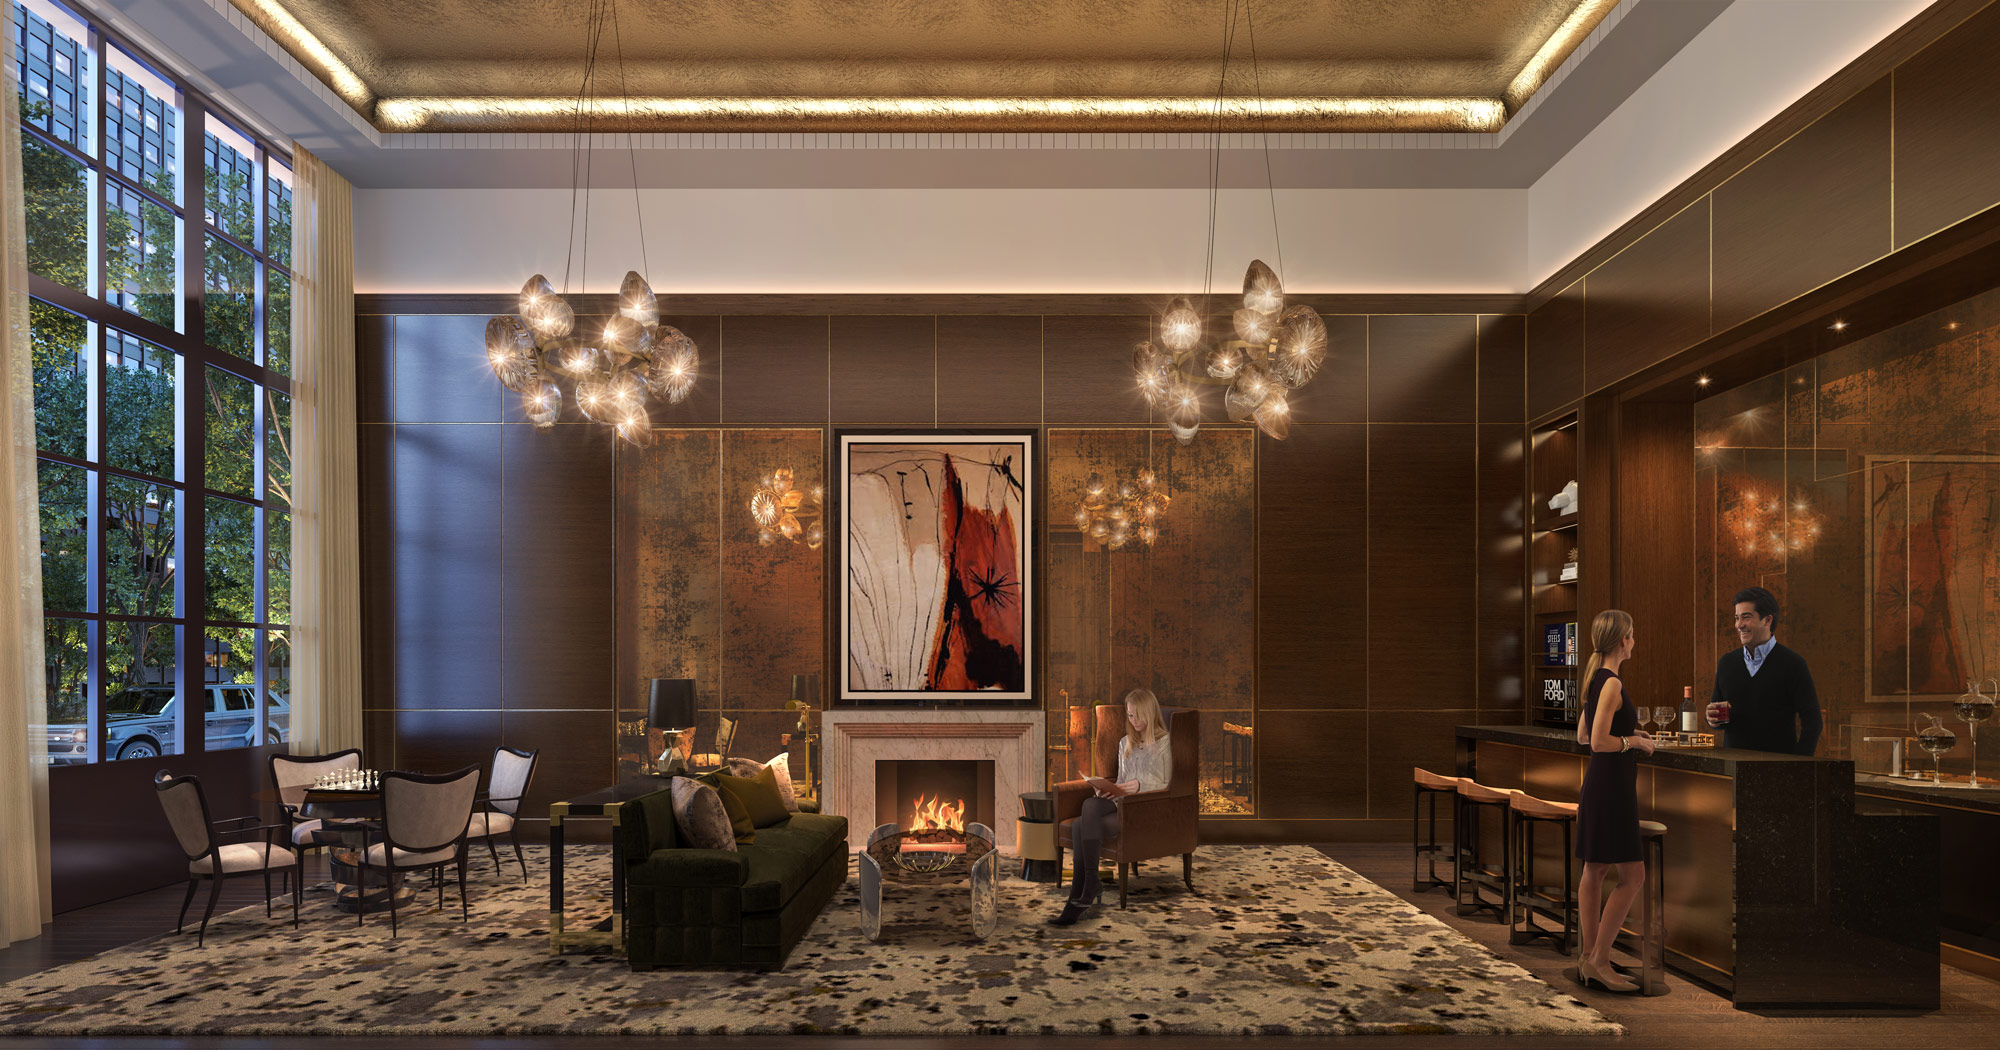 Luxury Upper East Side Condos for Sale | The Kent – Amenities